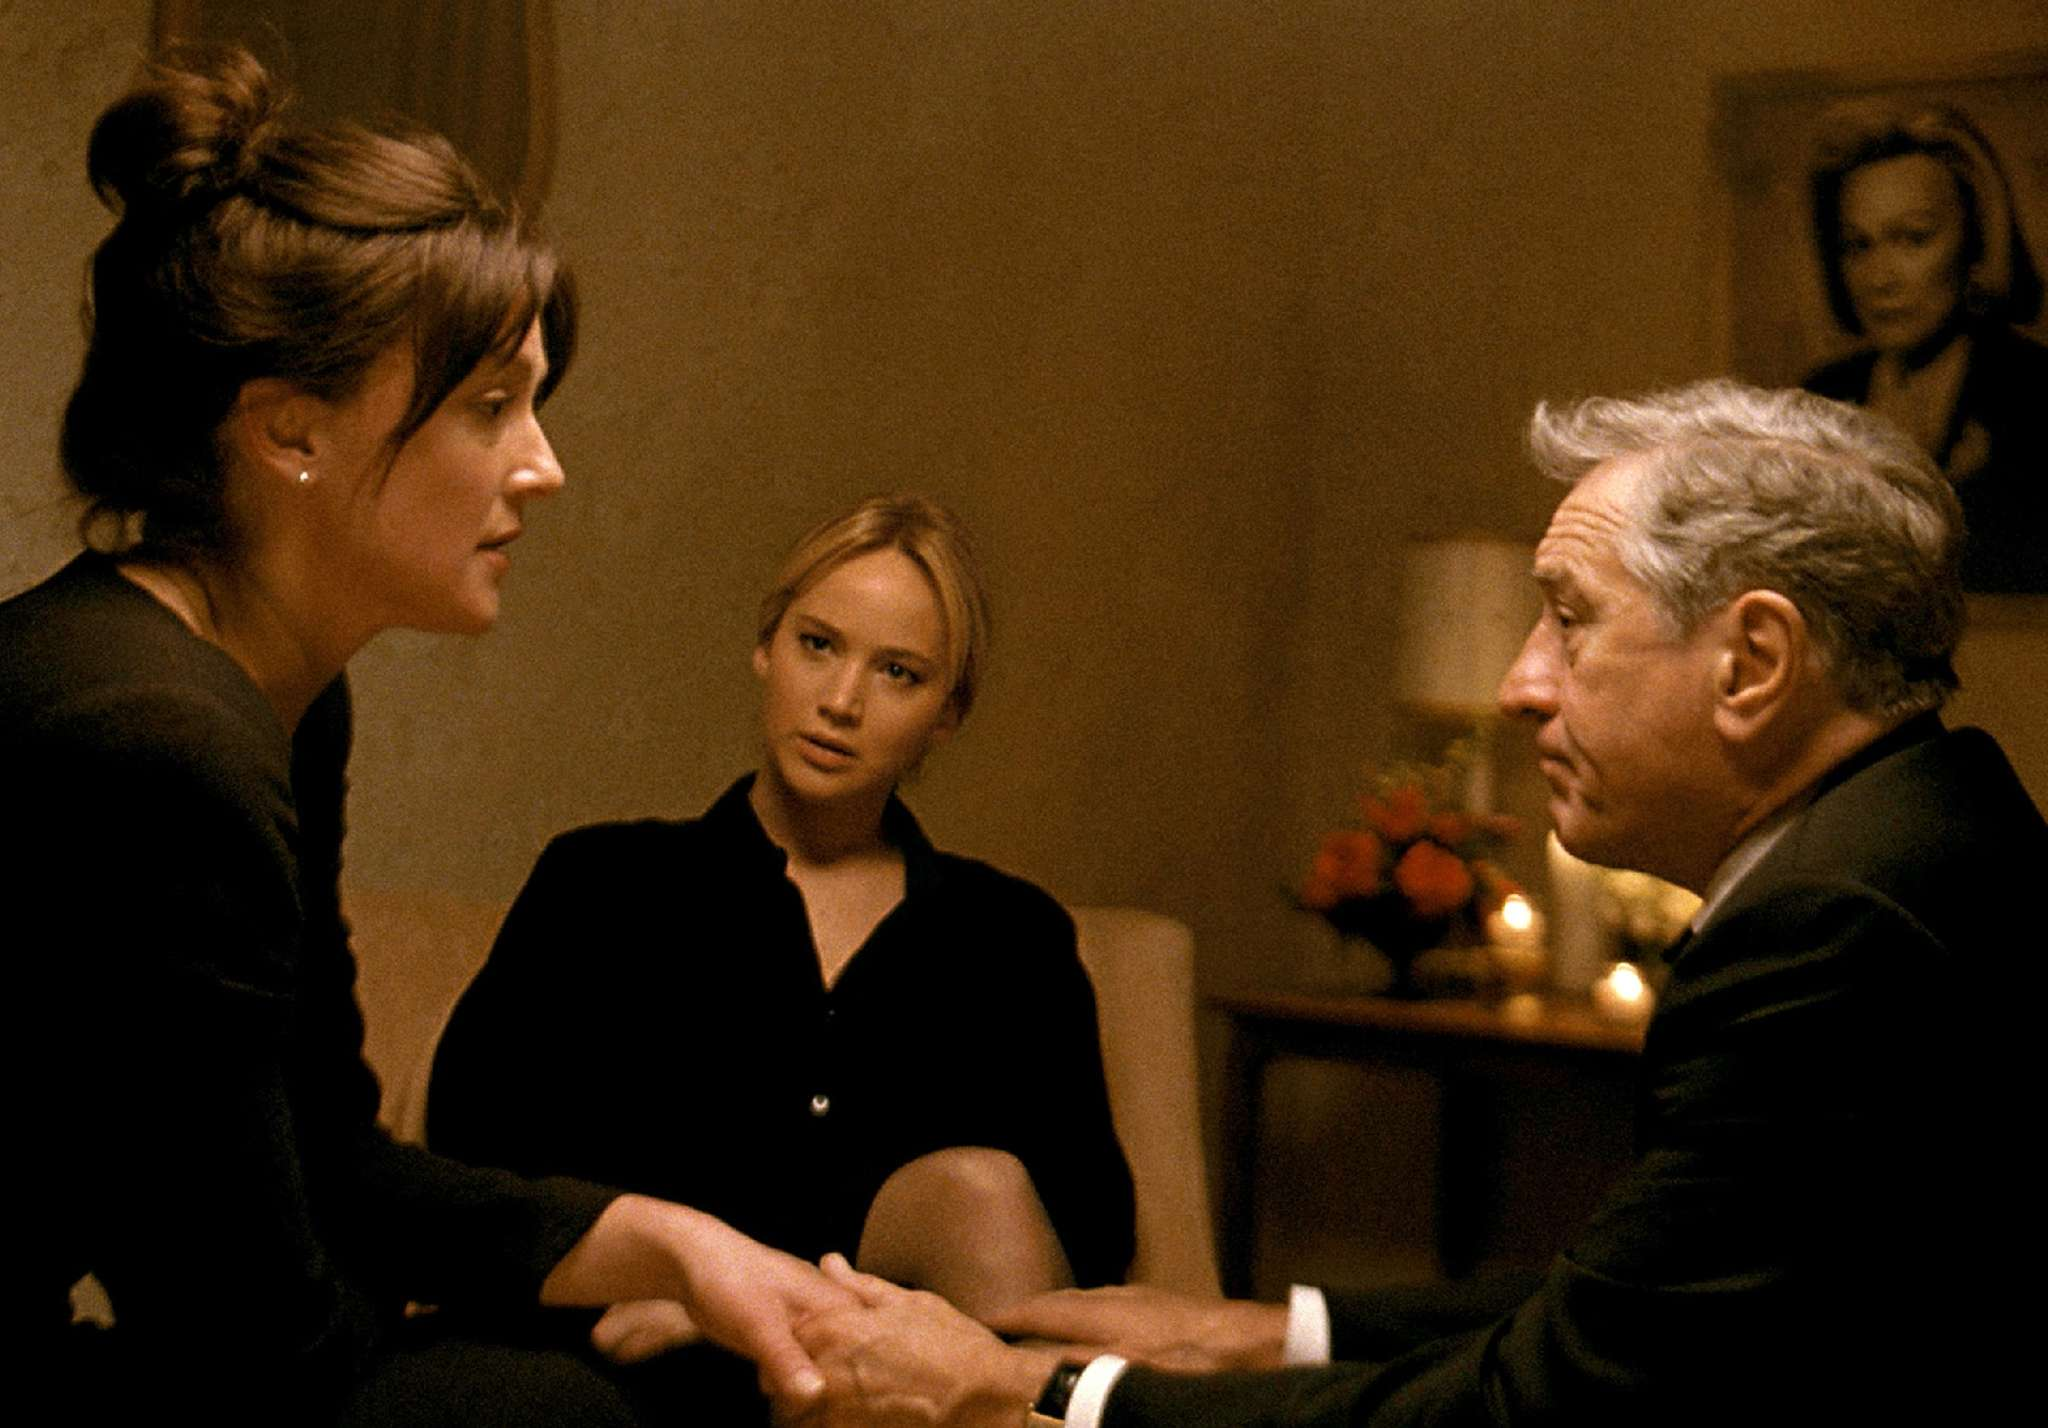 """Joy"" stars Jennifer Lawrence (center) in the title role, with Elisabeth Rohm as her sister and Robert De Niro as their father."